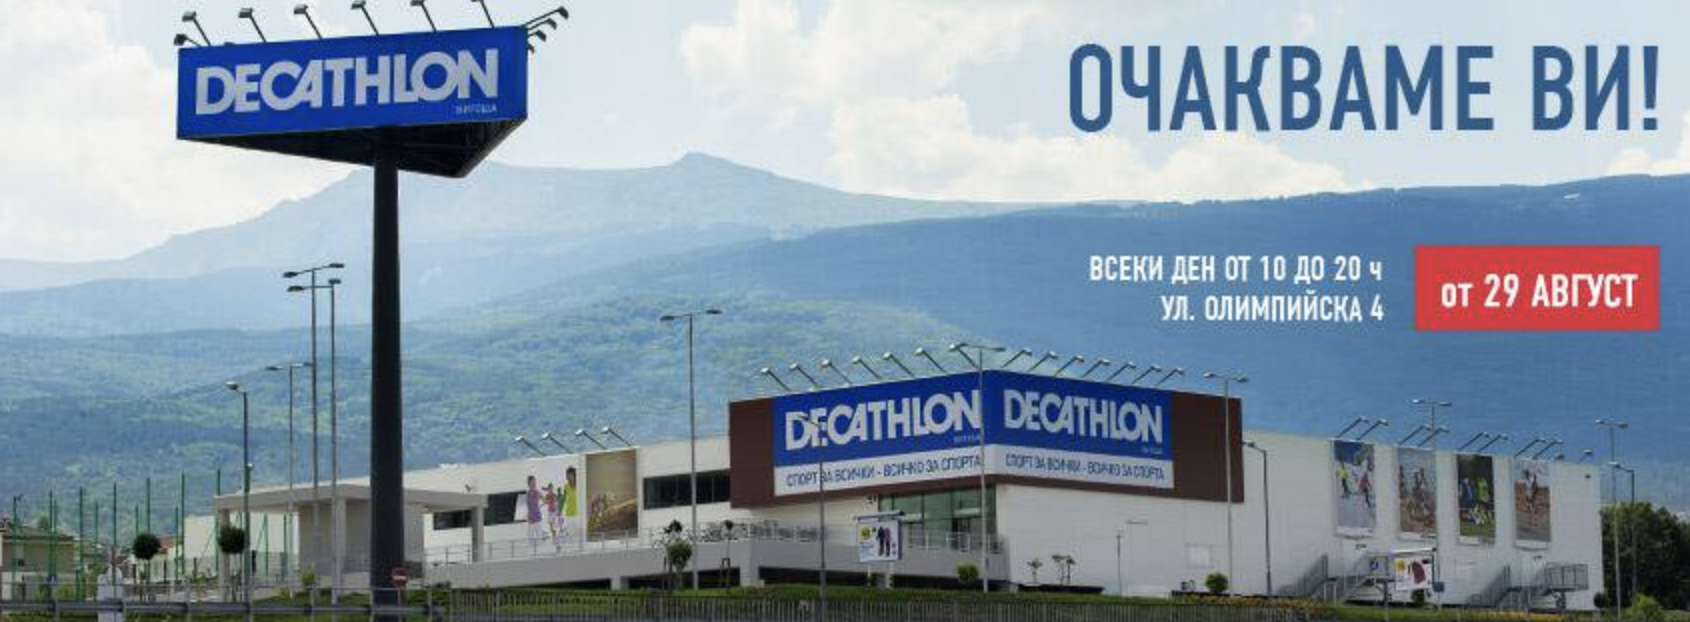 Decathlon Bulgarie